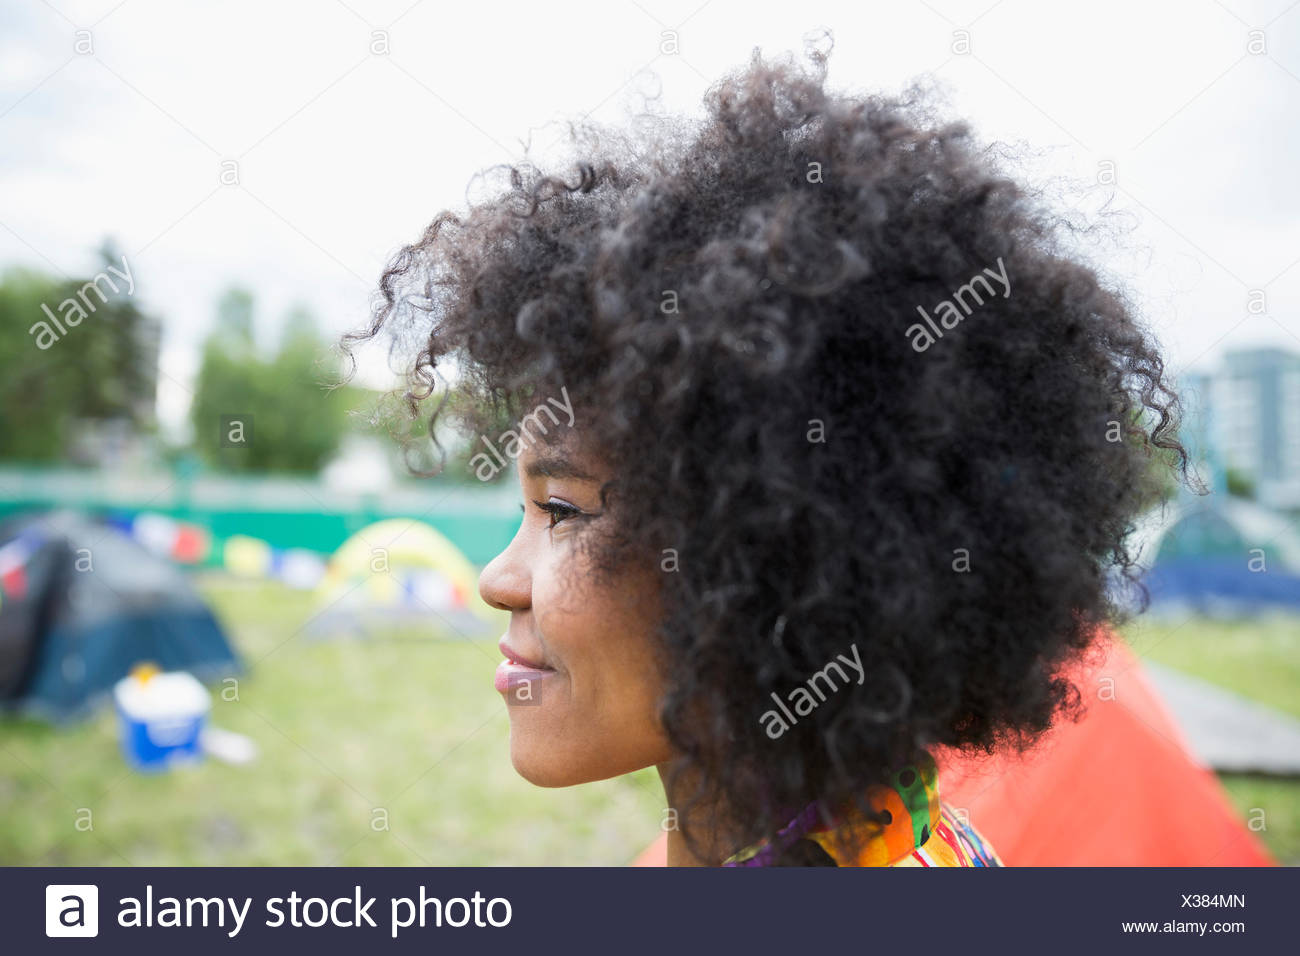 Profile portrait young woman with curly black afro looking away at summer music festival campsite - Stock Image